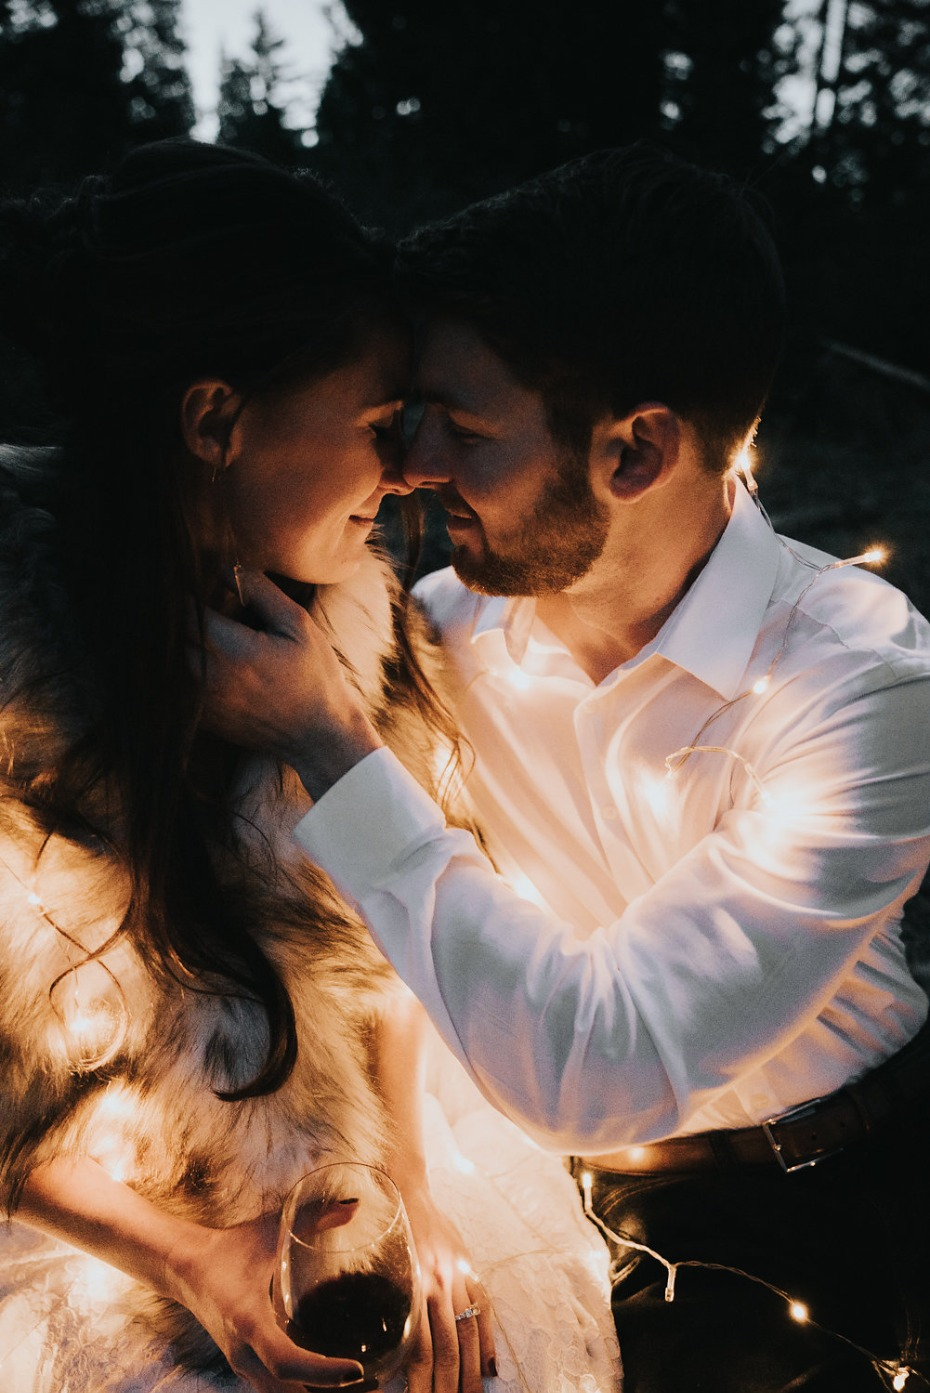 glowing wedding photo idea